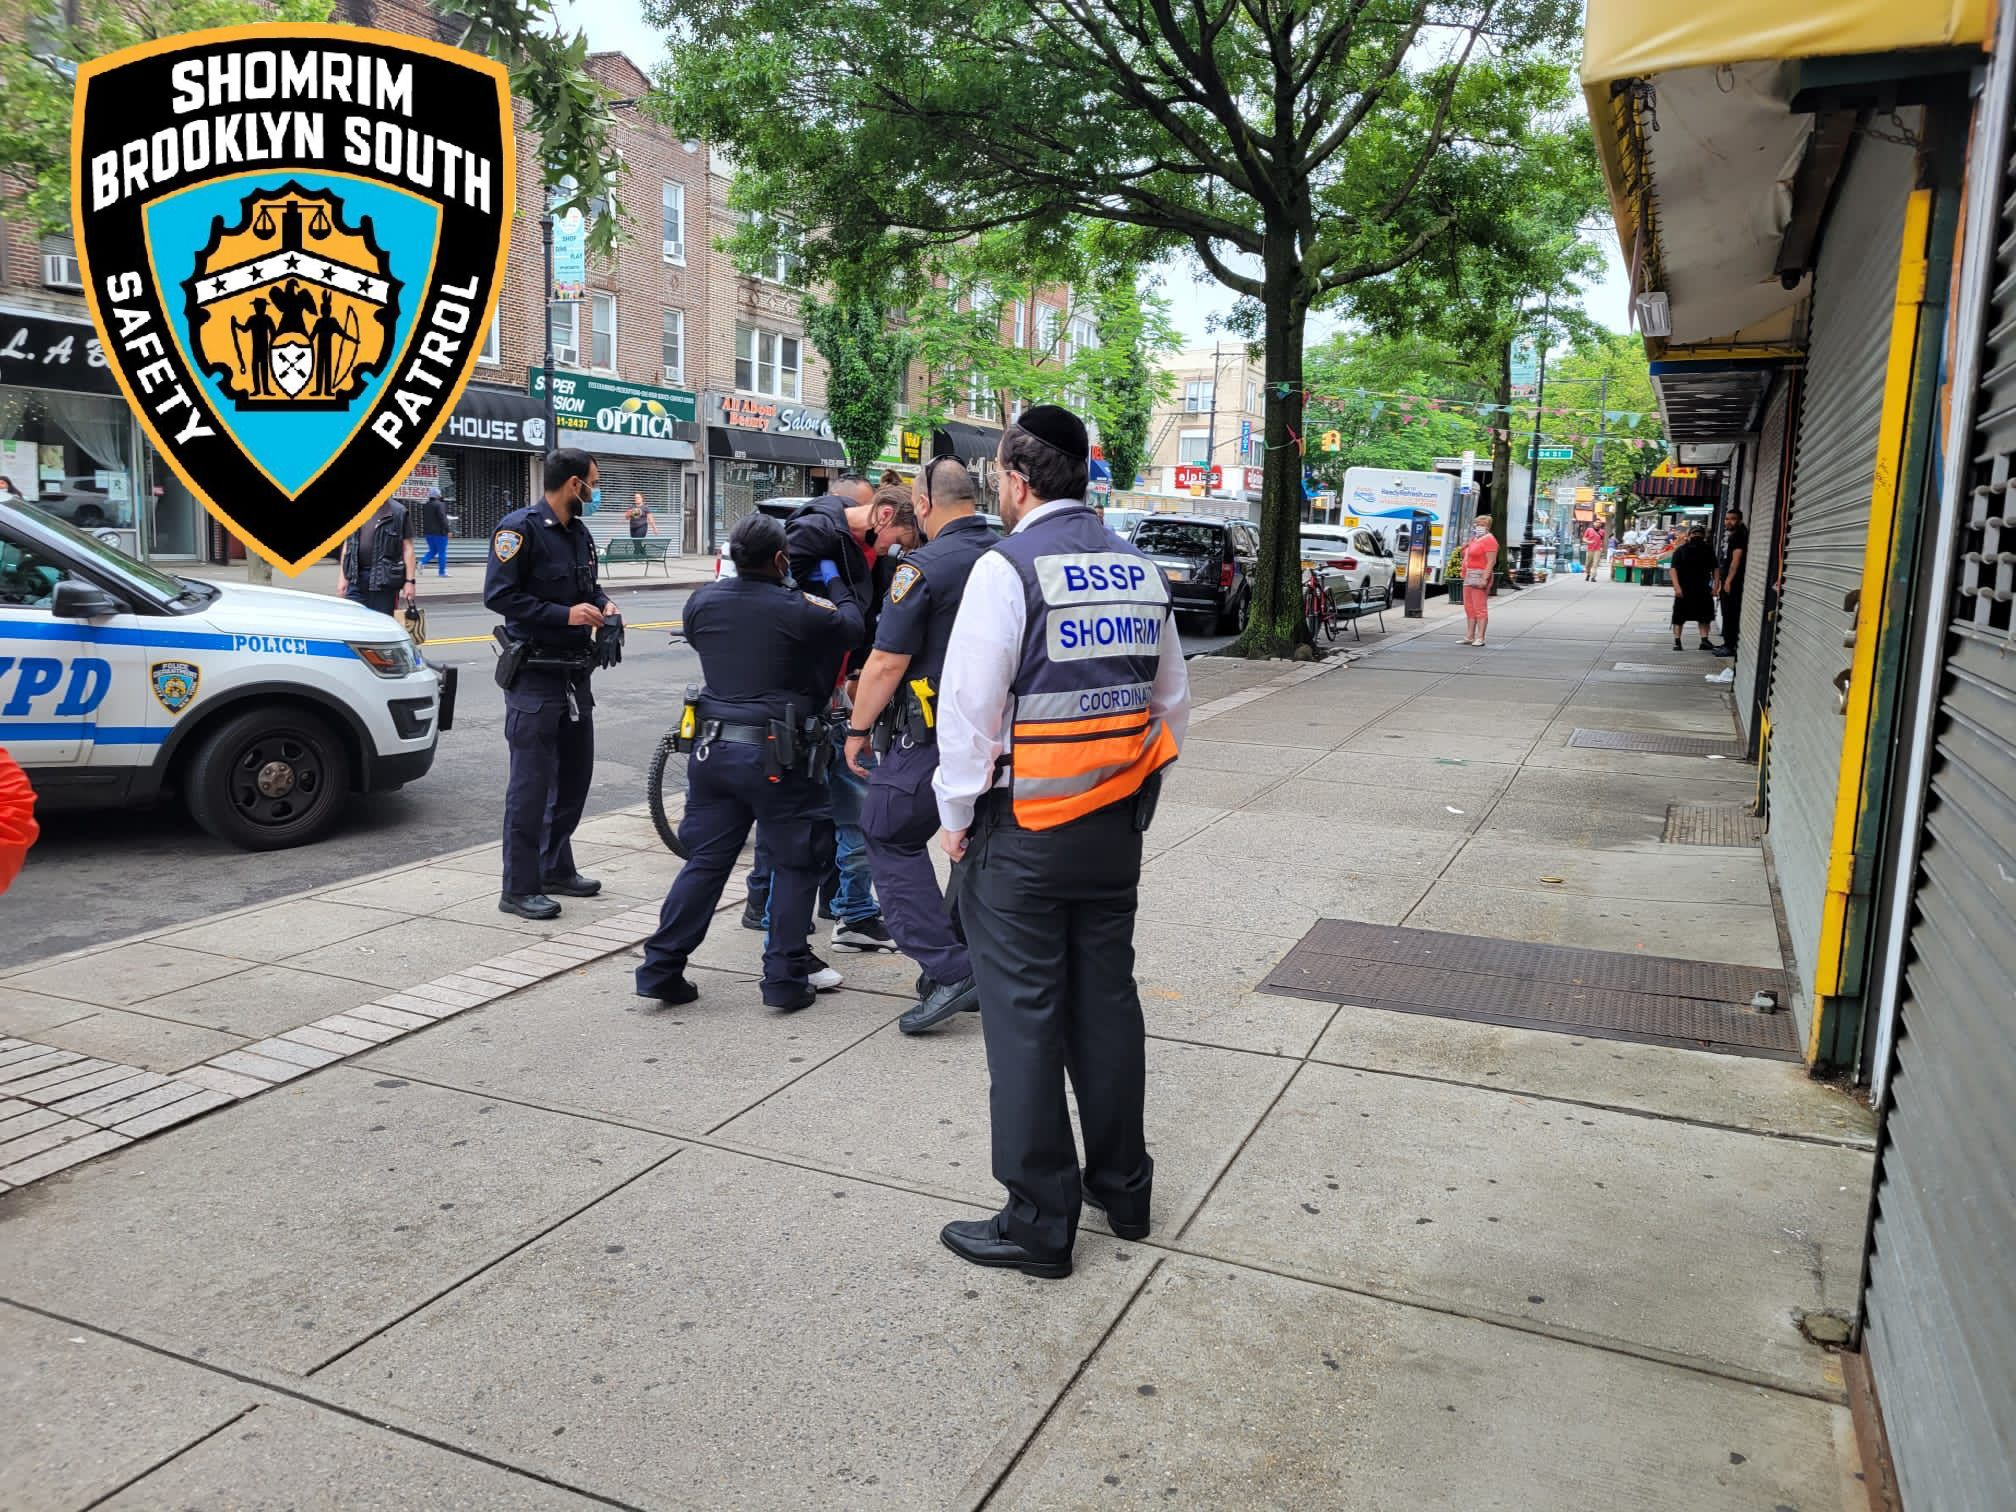 Car theif arrested by Boro Park Shomrim